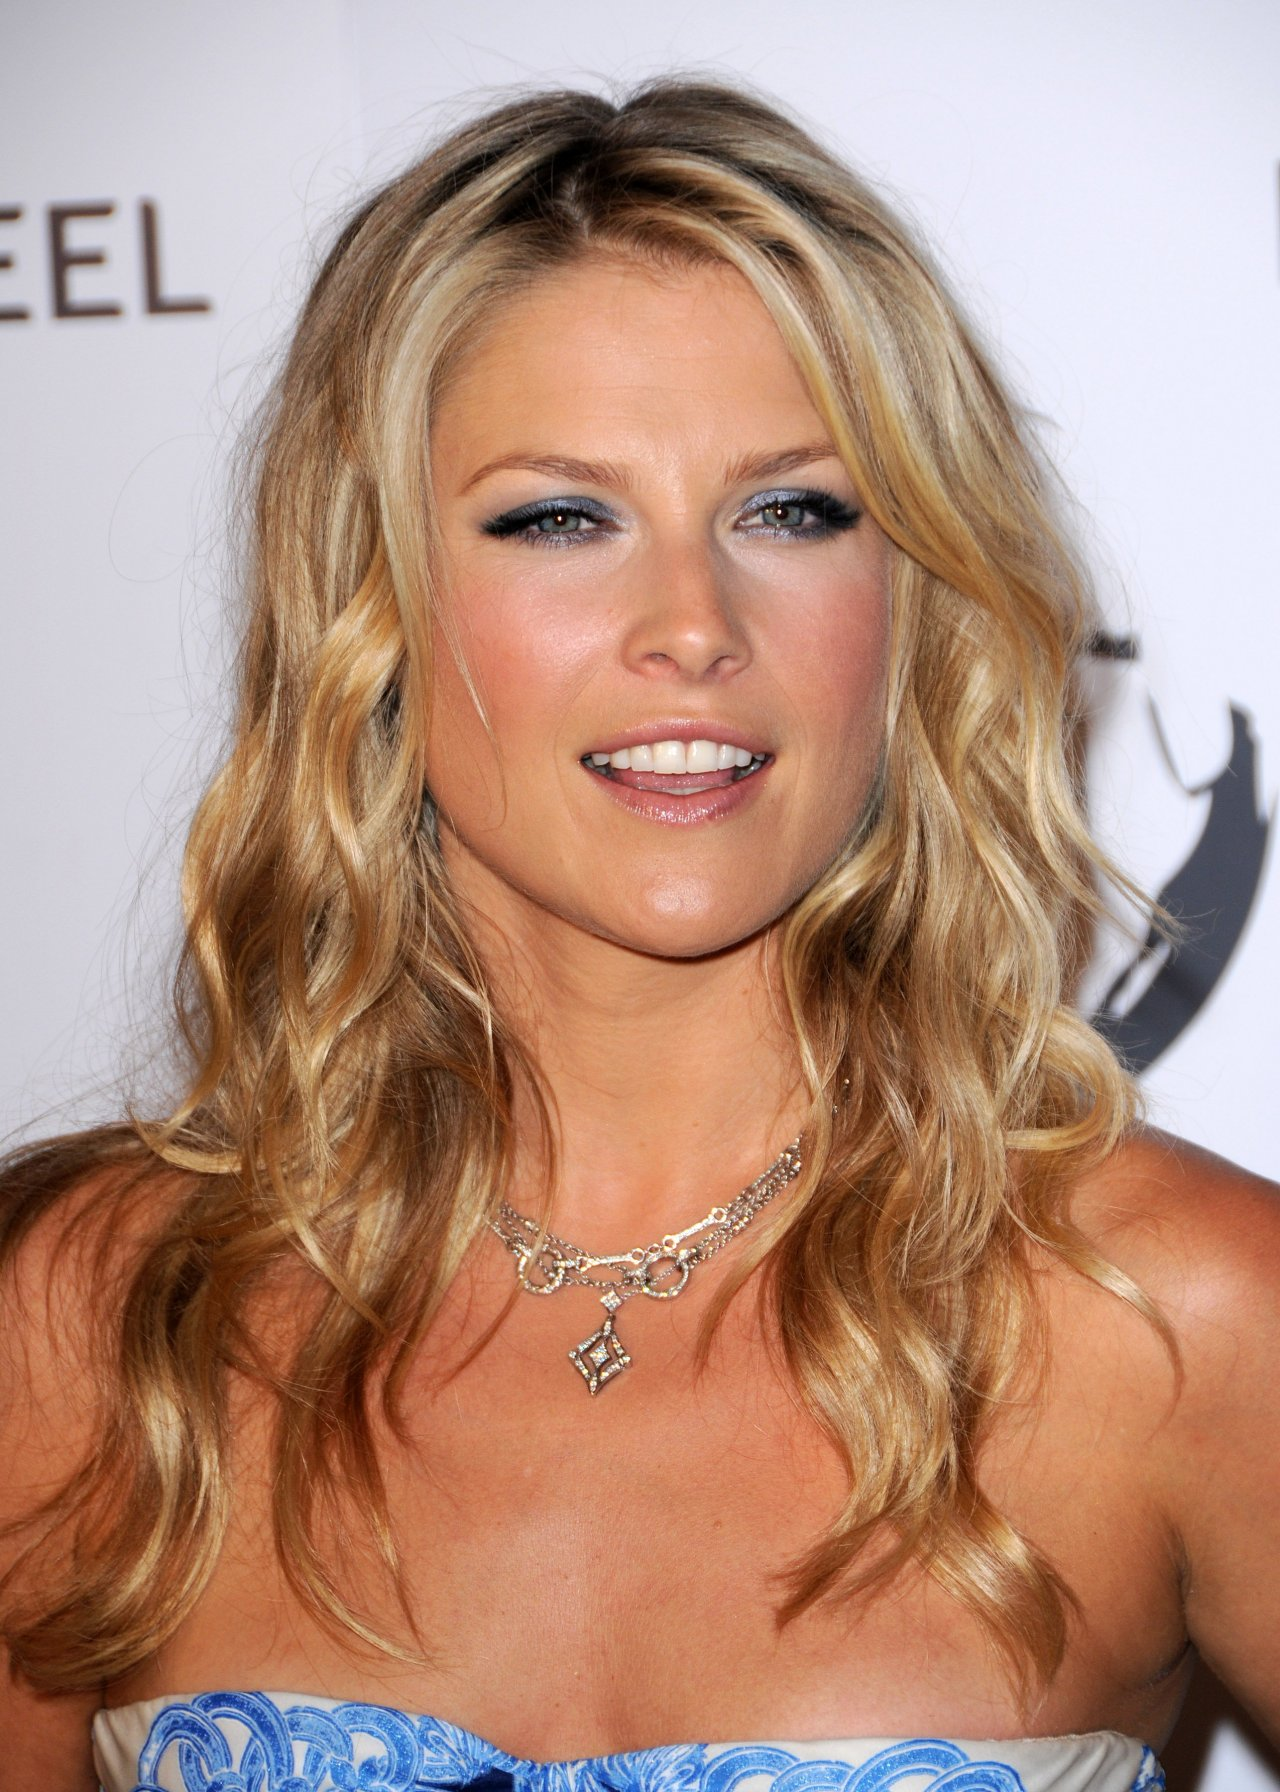 Ali Larter - Picture Colection